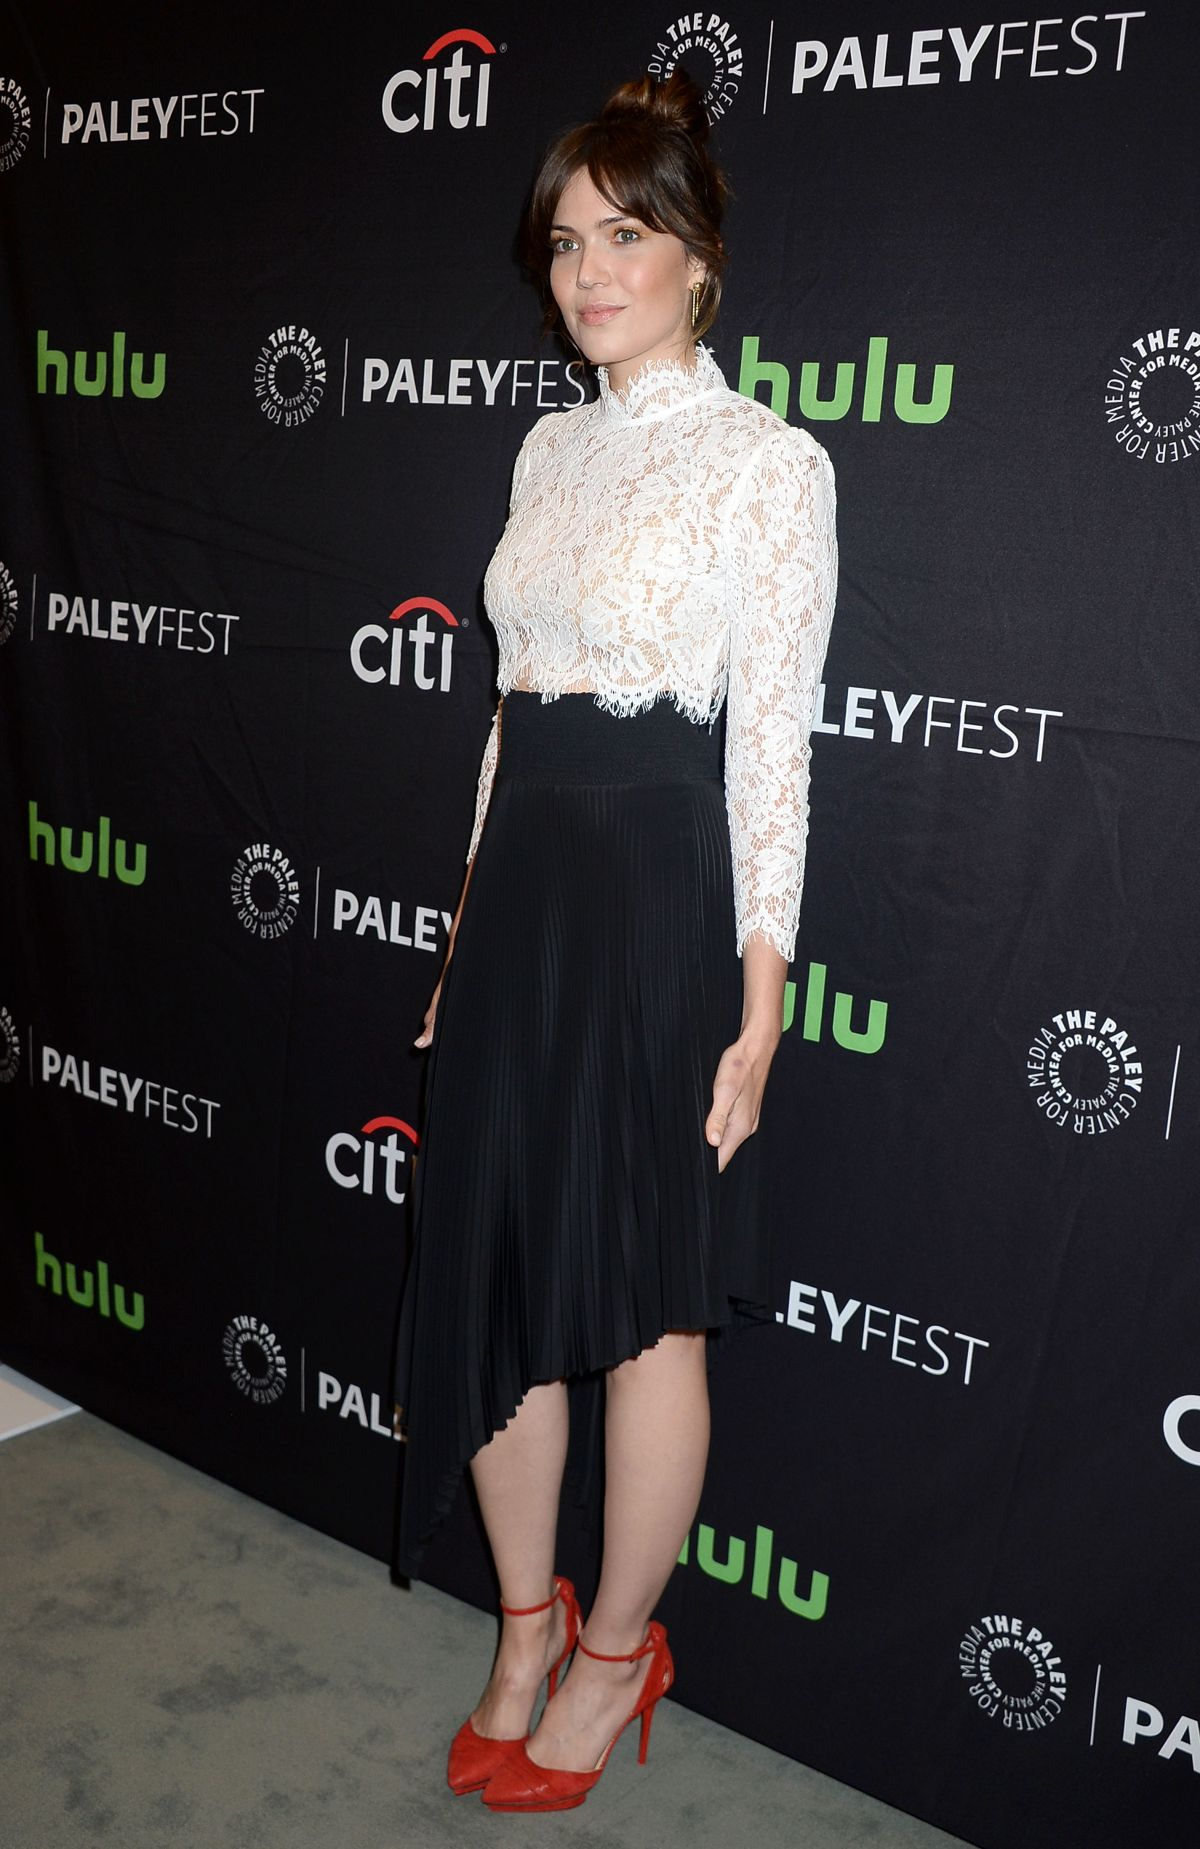 mandy moore at paleyfest 2016 fall tv preview for nbc in